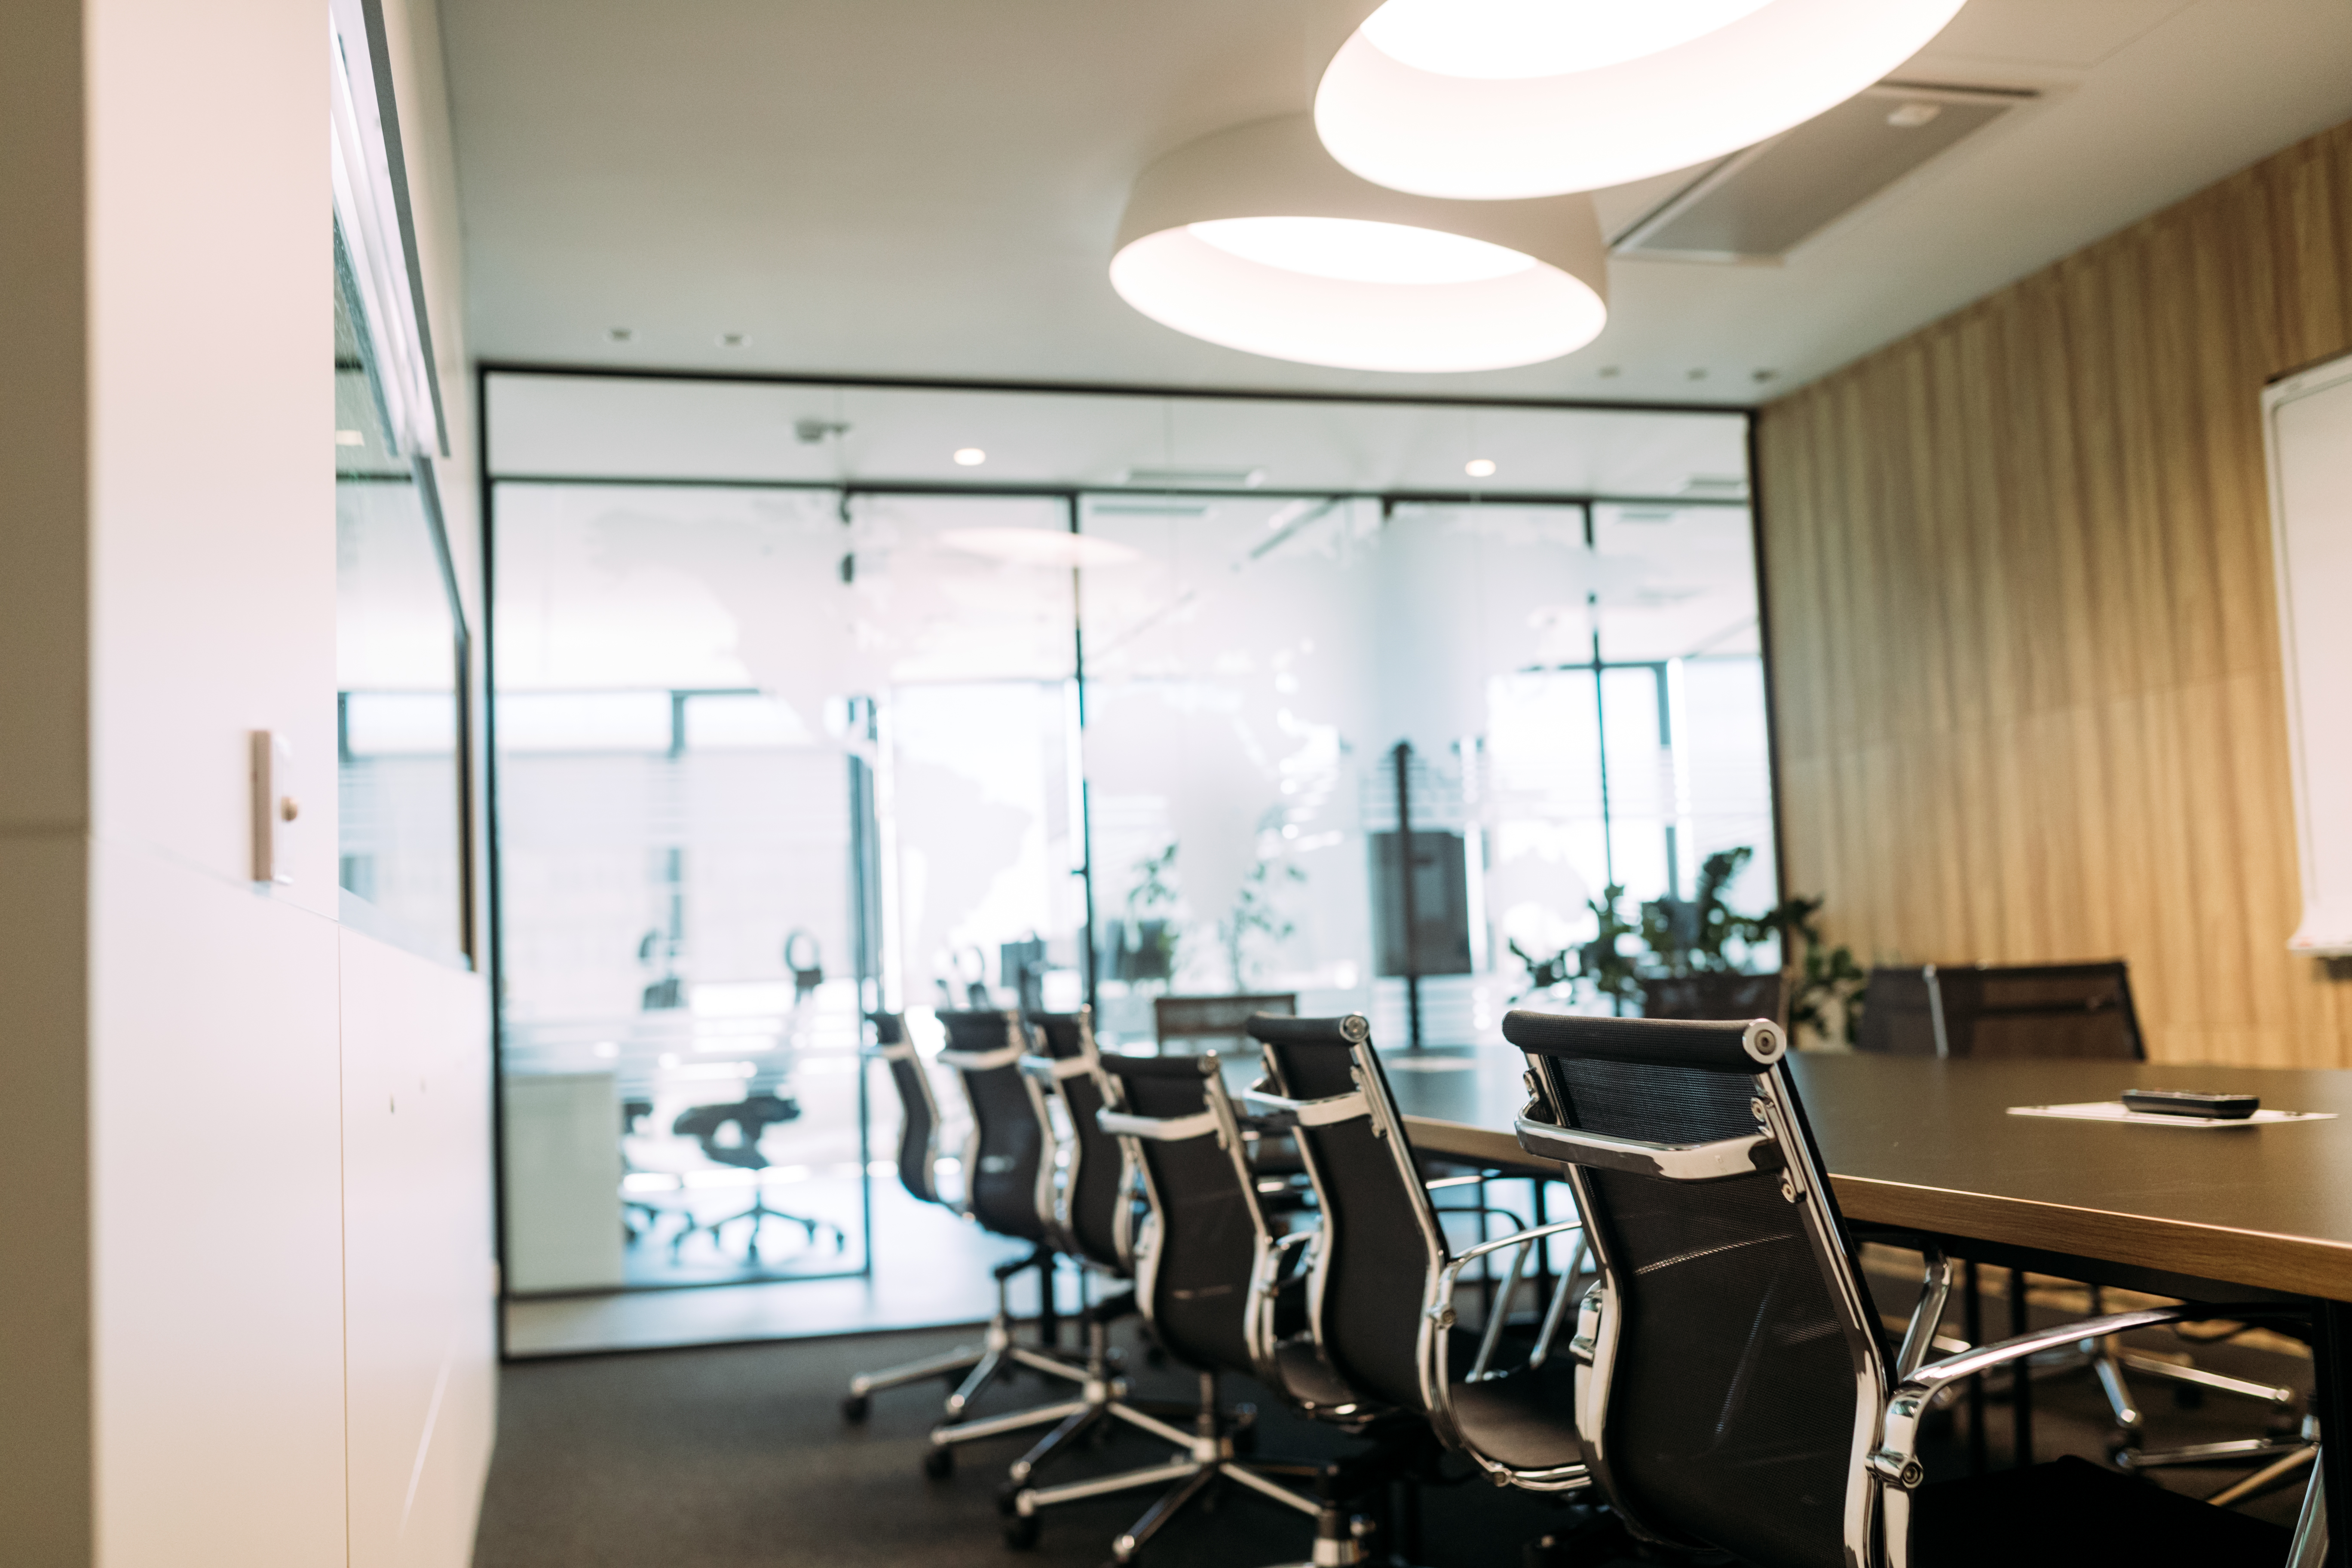 business-meeting-room-or-board-room-interiors-7CEUZGW